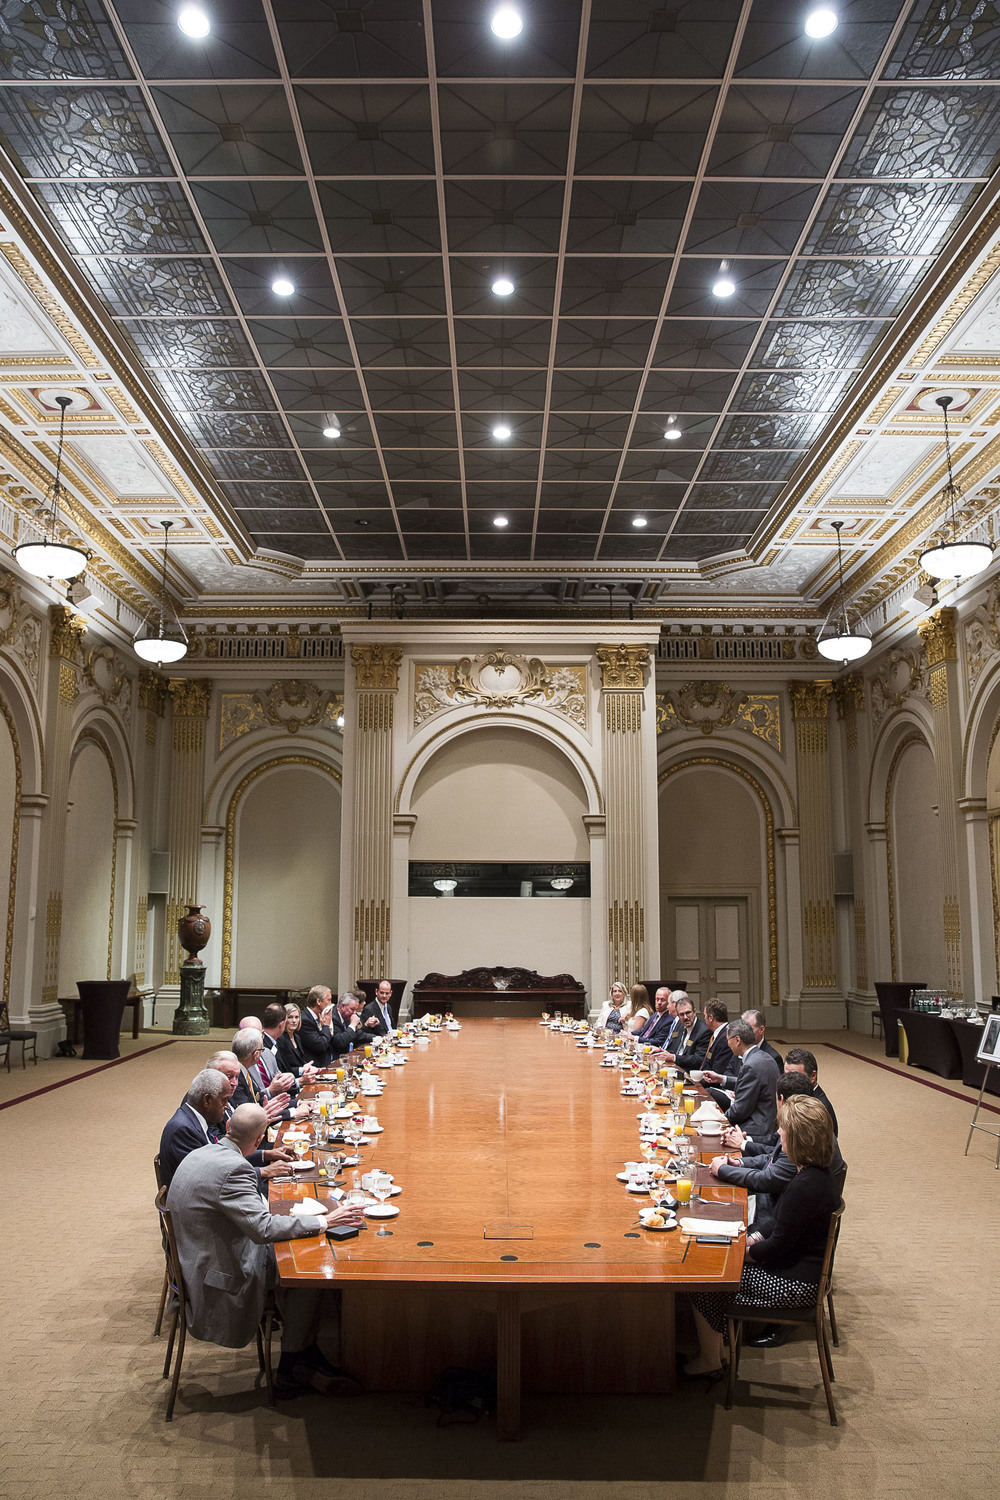 Historic Boardroom. The executive staff of the Exchange has not been large enough to fill the room for years, so it is used primarily as an event space for visiting companies. Exxon, for instance, has hosted annual investors meetings here. The Tiffany glass ceiling, originally open to the sky, was sealed from the top in response to terrorist attacks at the turn of the 20th century.